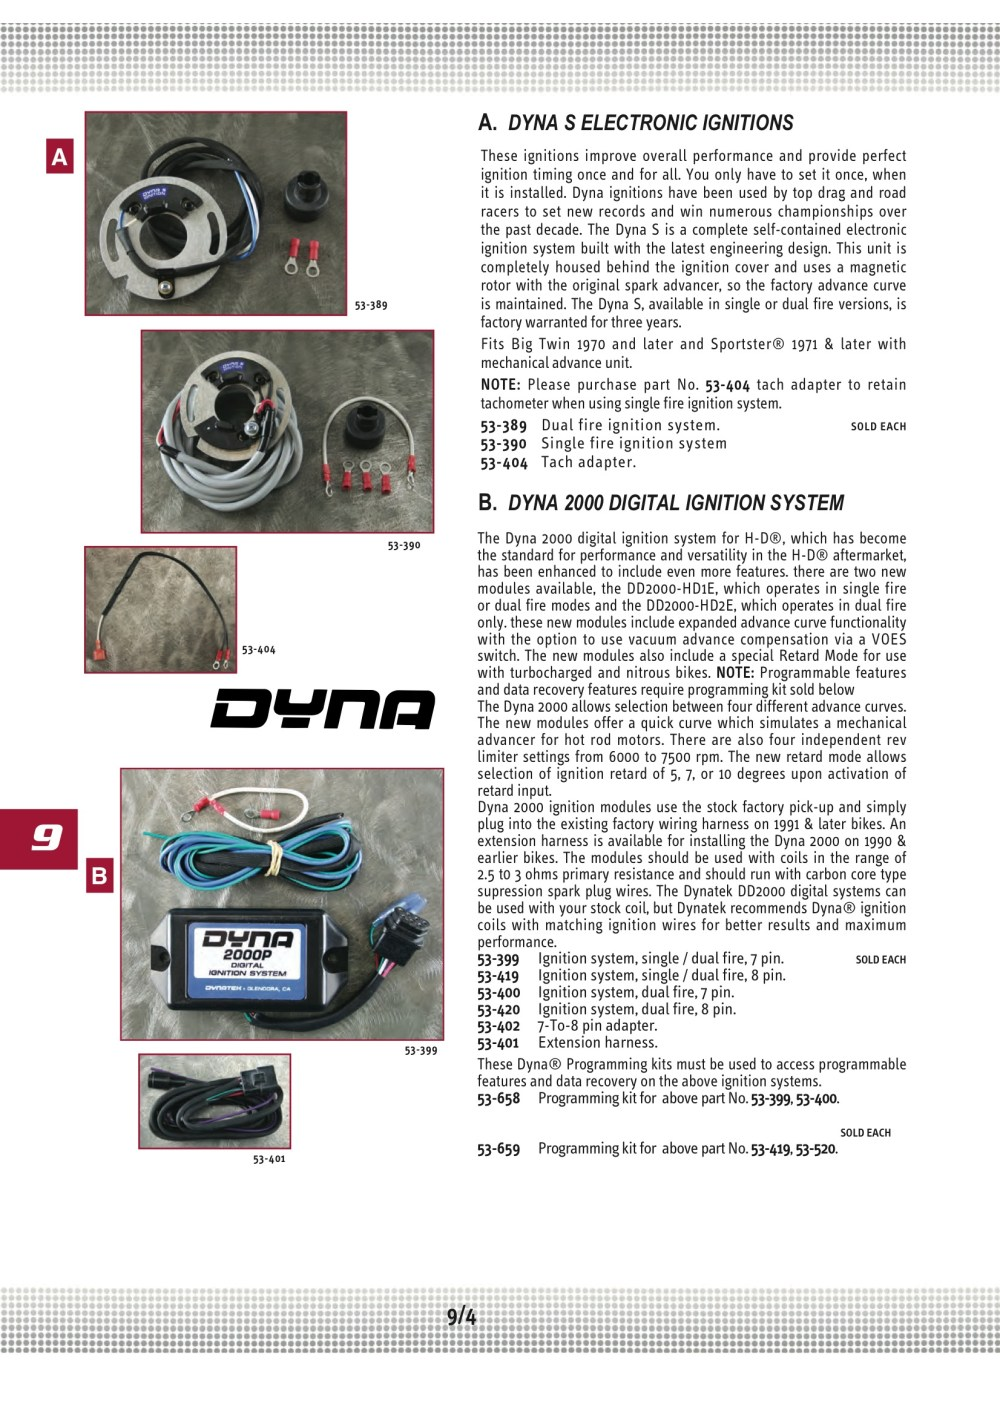 medium resolution of ultima ignition dyna 2000 dual fire 8 pin midwest 53 420